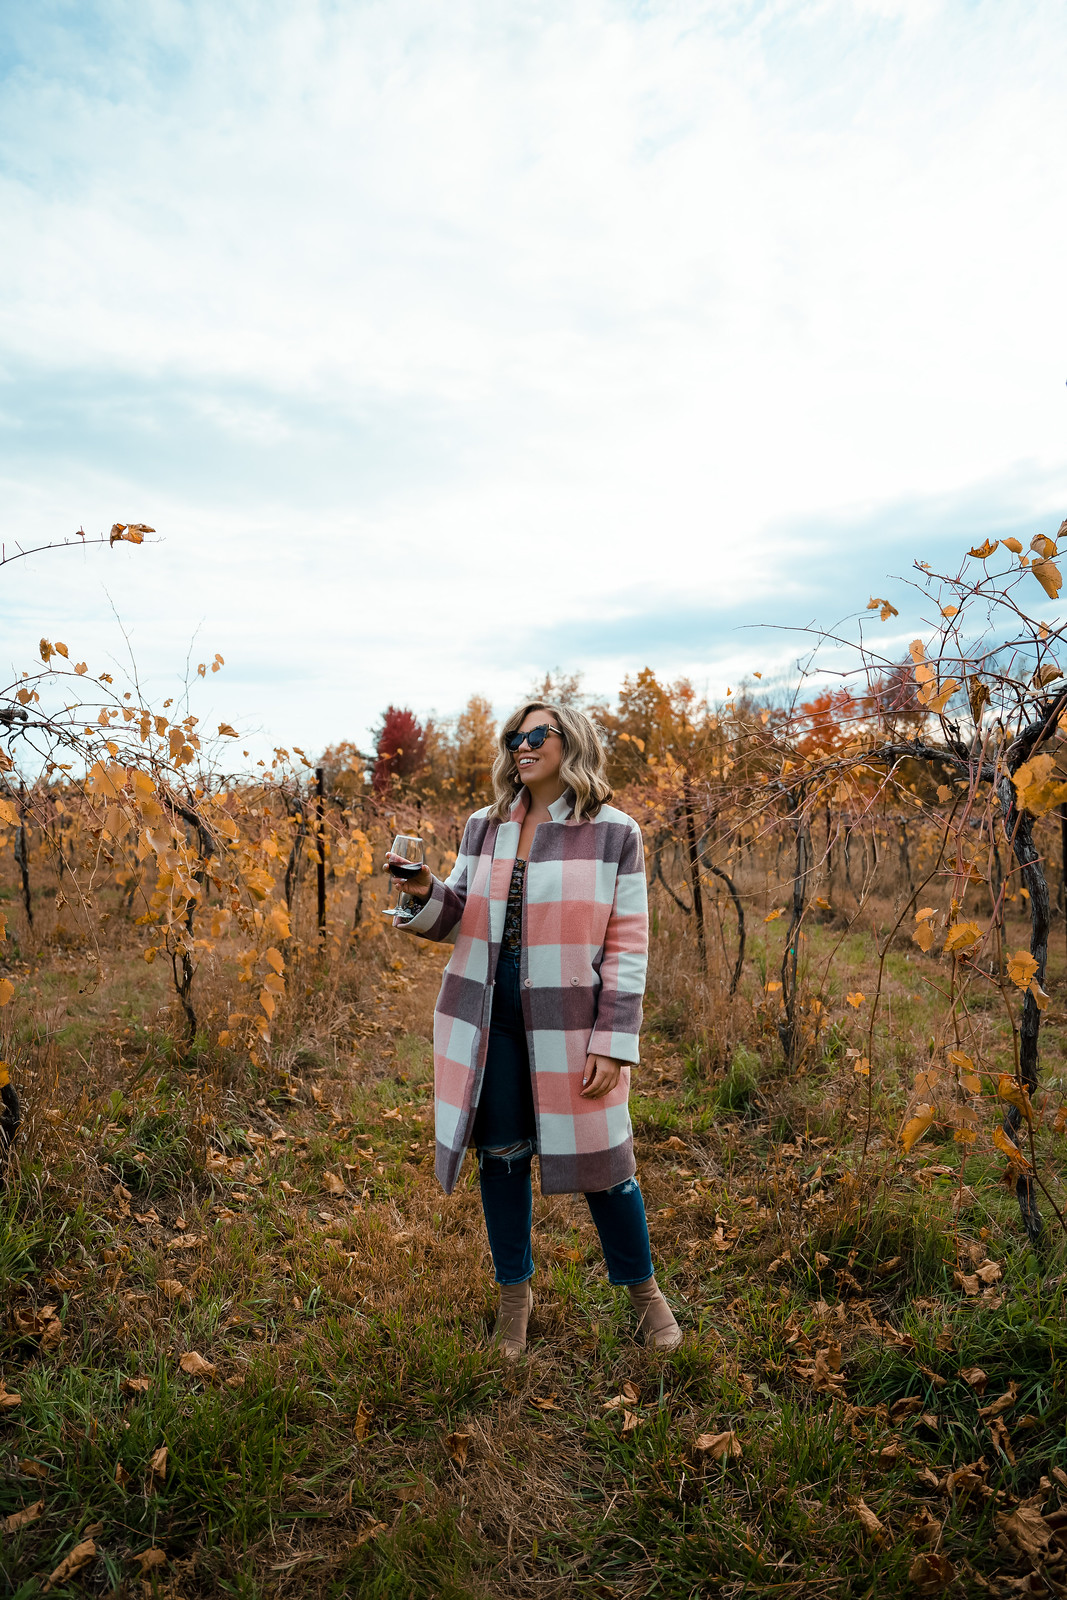 Shelburne Vineyard Winery | Shelburne VT | My Complete Vermont Fall Travel Guide: What to See, Do & Eat | Ultimate Fall Guide to Vermont | 5 Day Vermont Road Trip | Fall Foliage Road Trip Guide